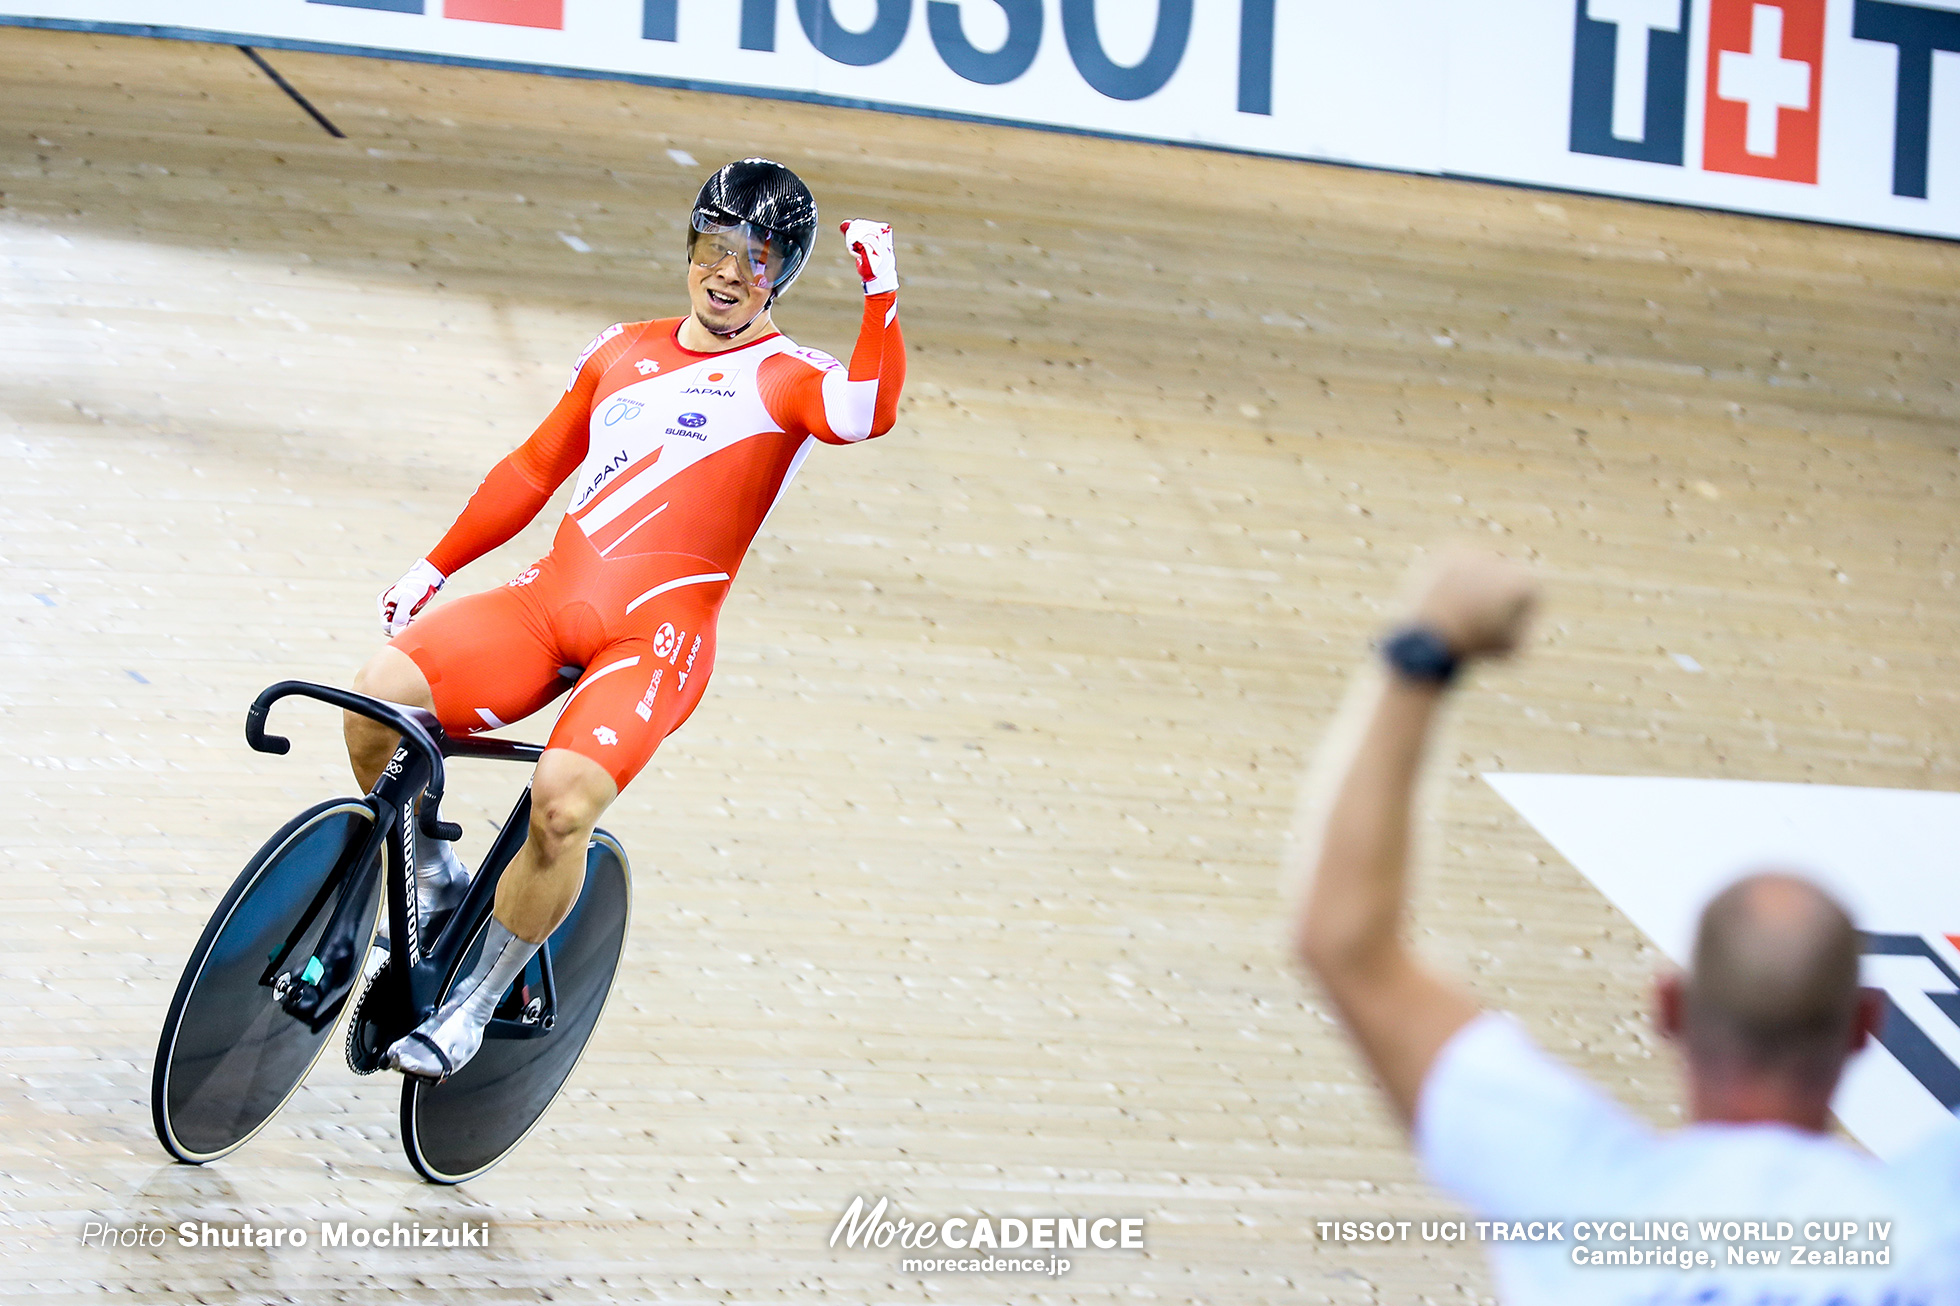 Final / Men's Team Sprint / TISSOT UCI TRACK CYCLING WORLD CUP IV, Cambridge, New Zealand, 深谷知広